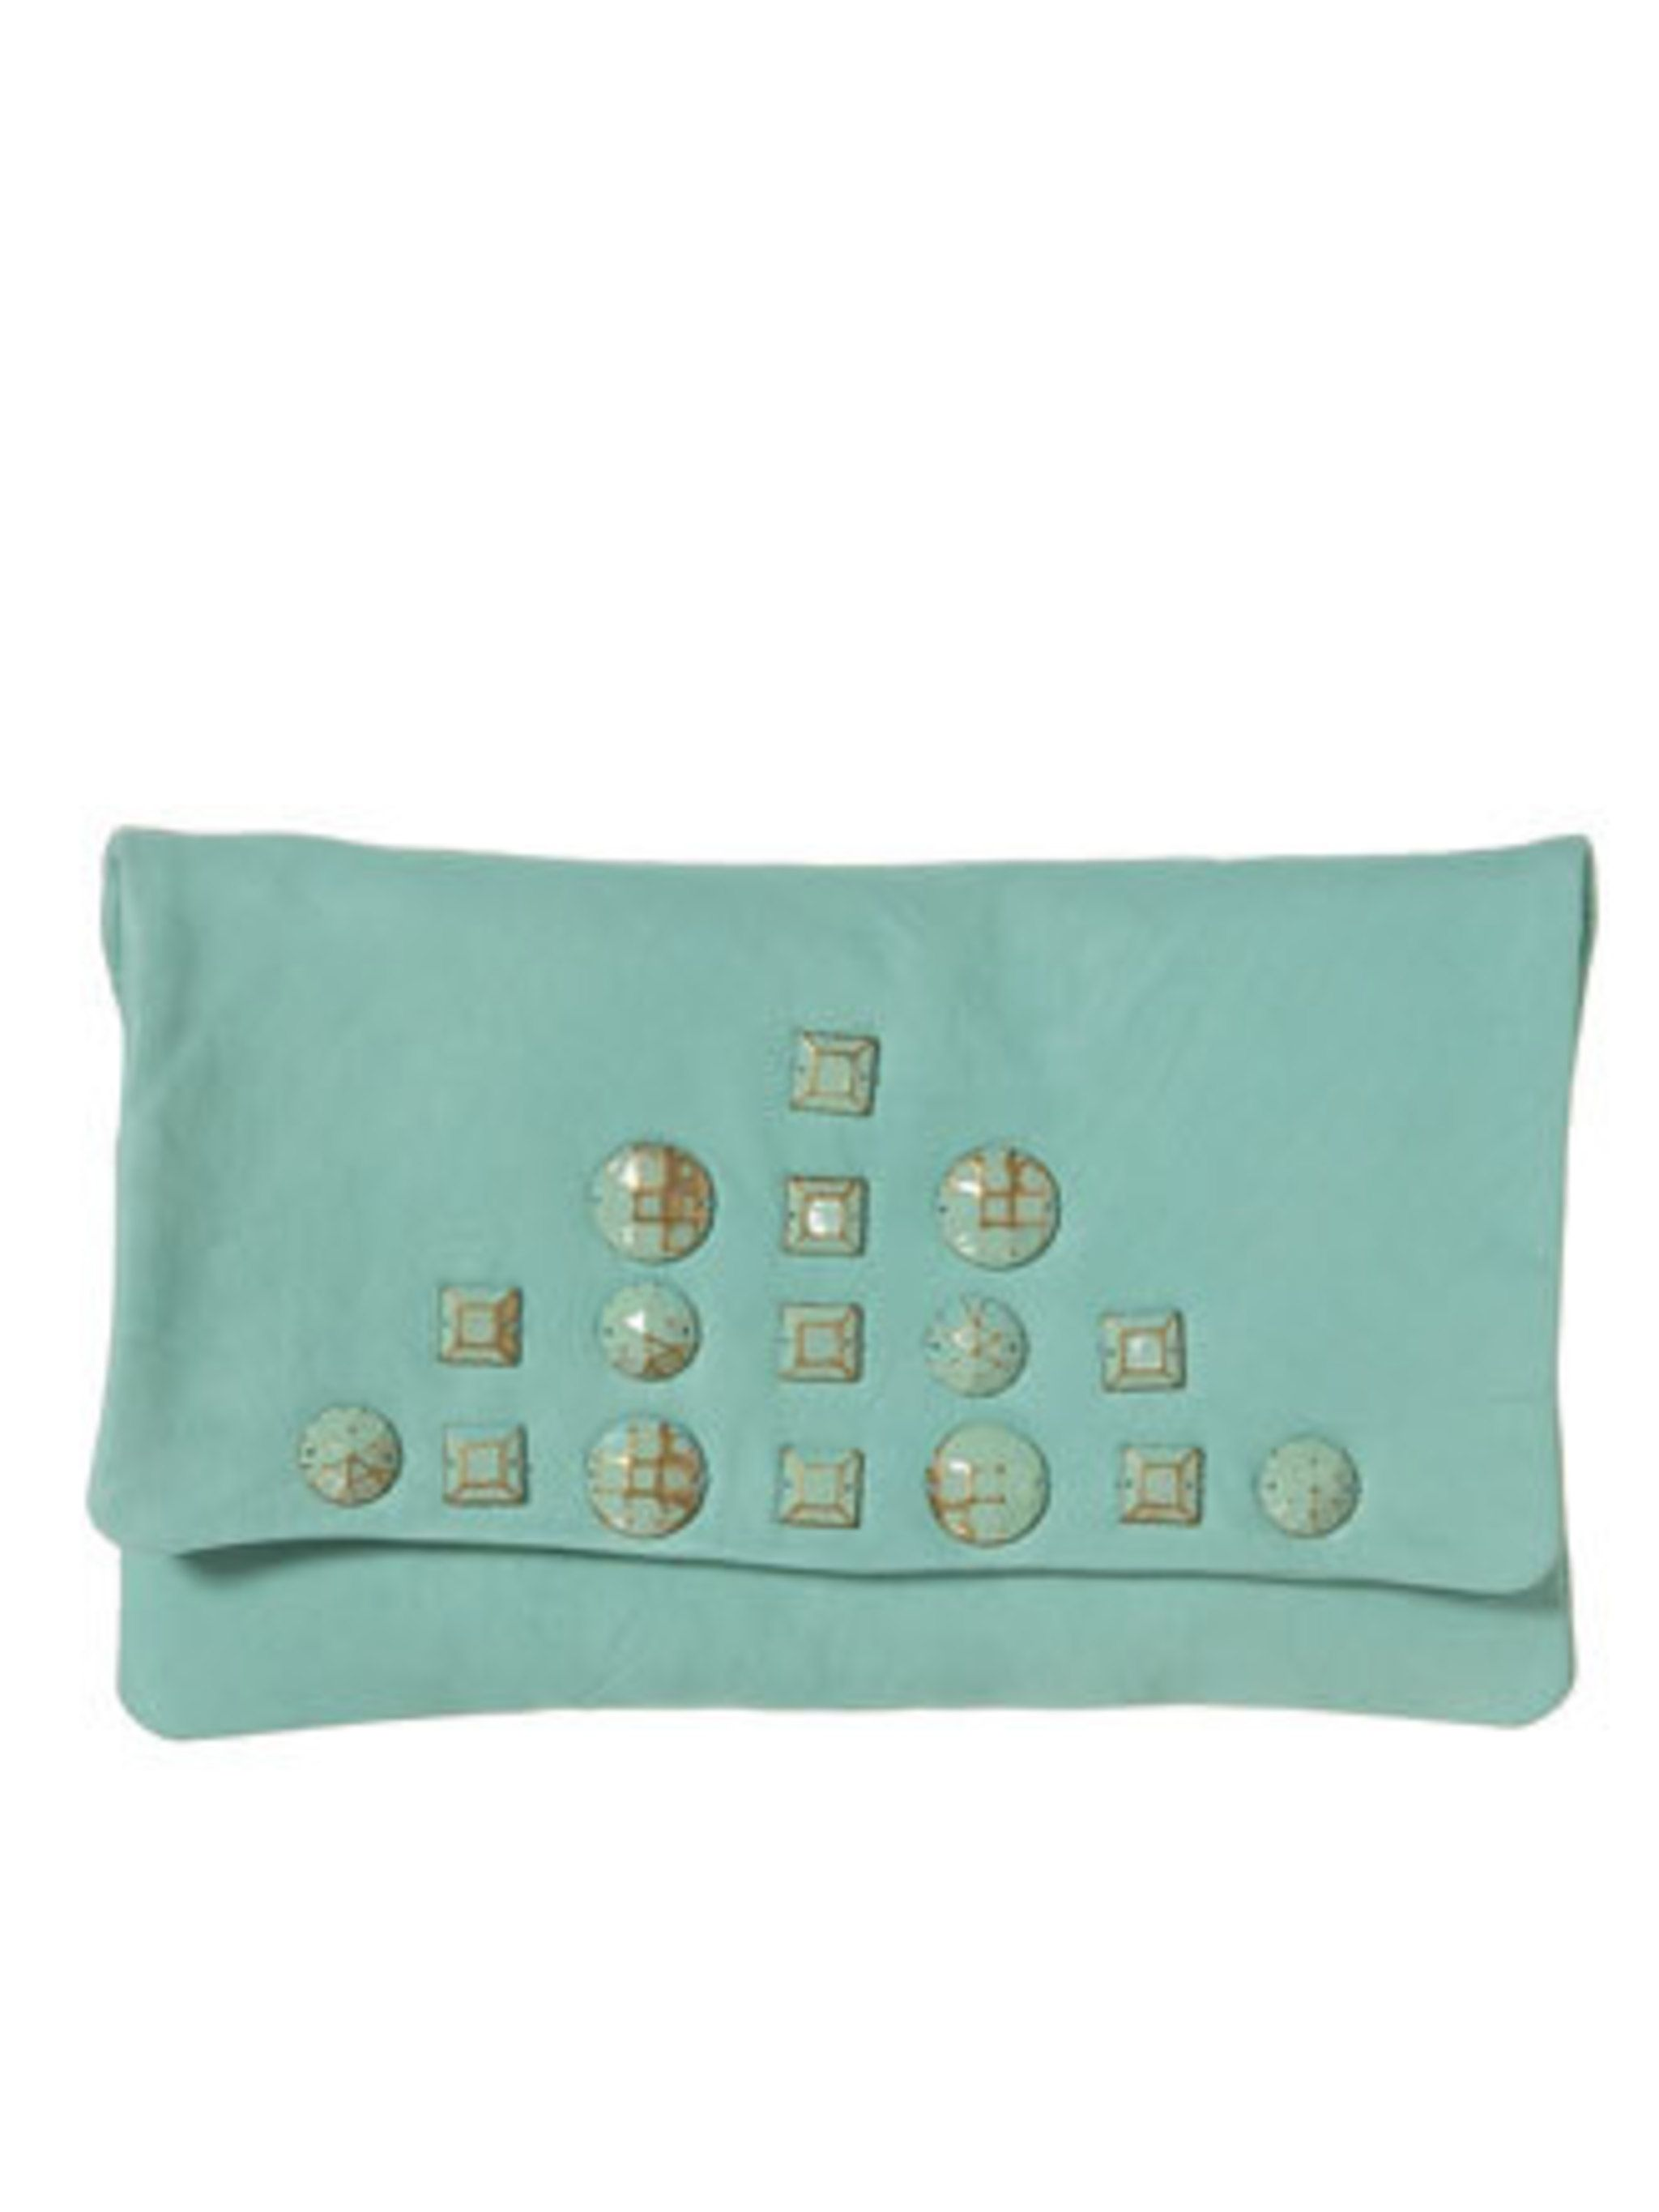 """<p>It's time to dig out your summer accessories. This clutch will give you something new and super summery to proudly tote around town.</p><p>Leather clutch, £38 by <a href=""""http://www.topshop.com/webapp/wcs/stores/servlet/ProductDisplay?beginIndex=0&amp&#x3B;"""